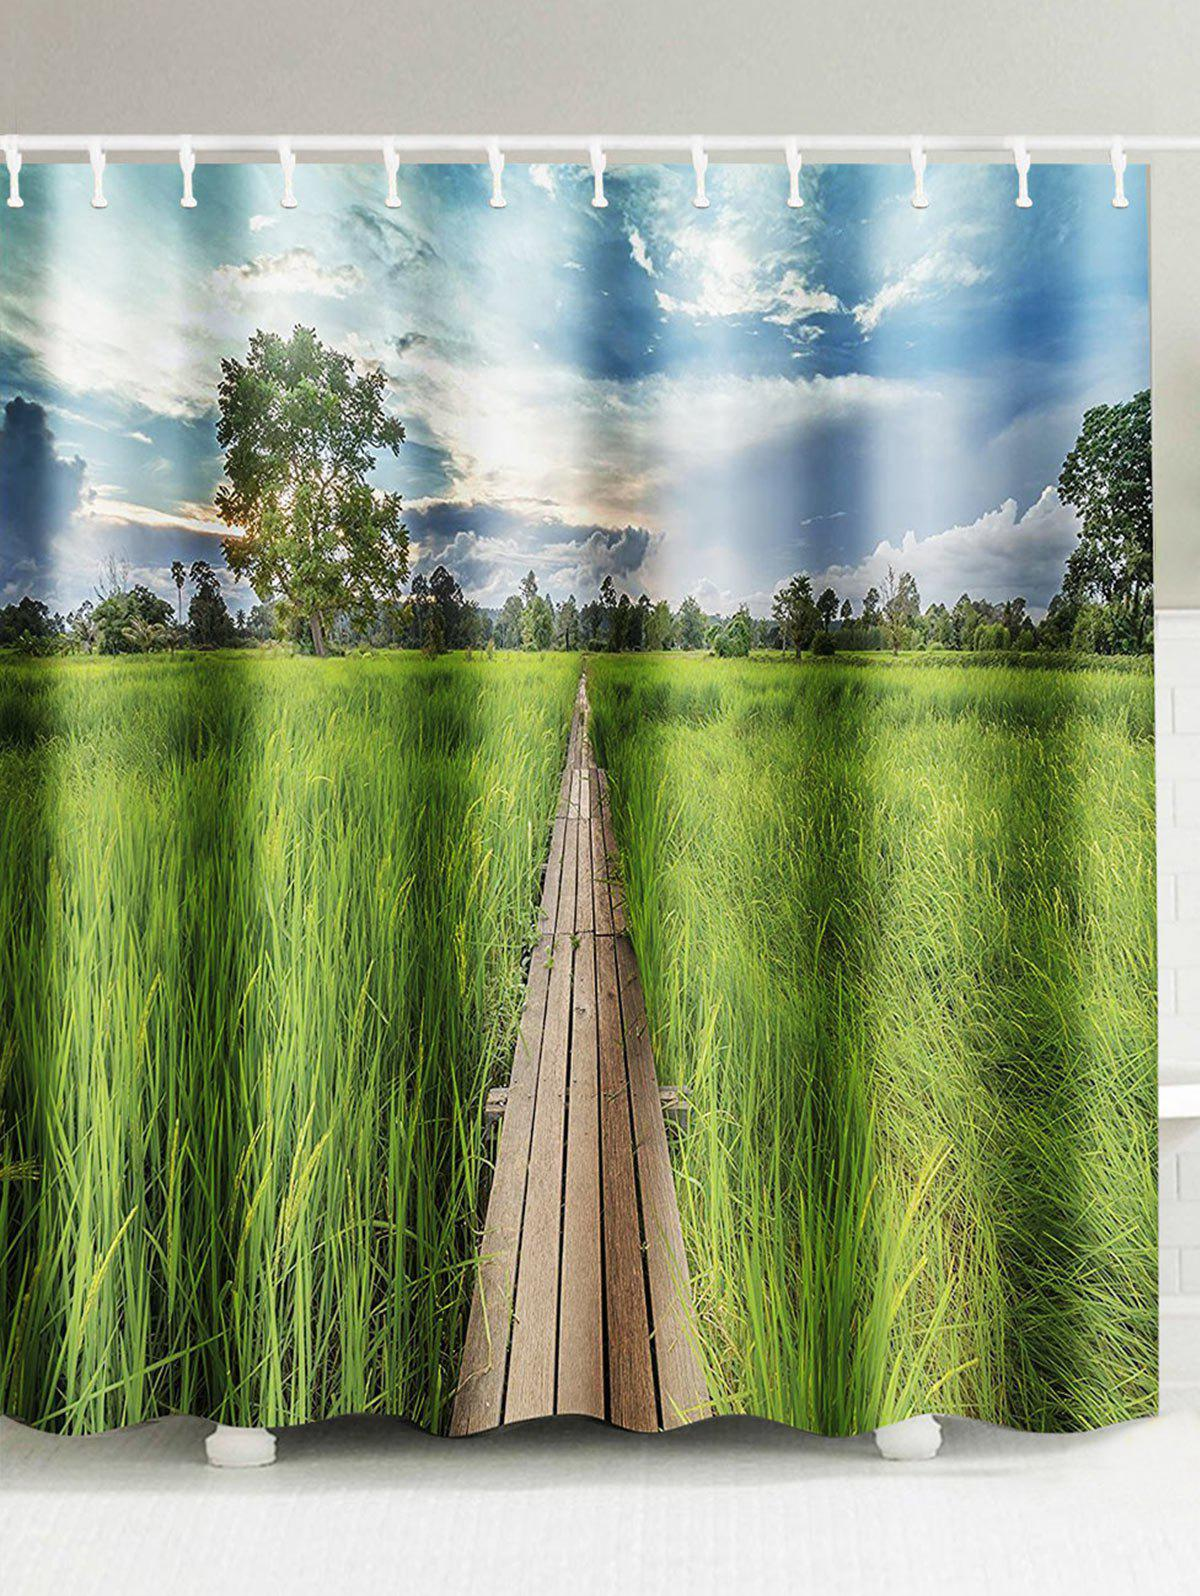 2018 Paddy Field Landscape Waterproof Shower Curtain